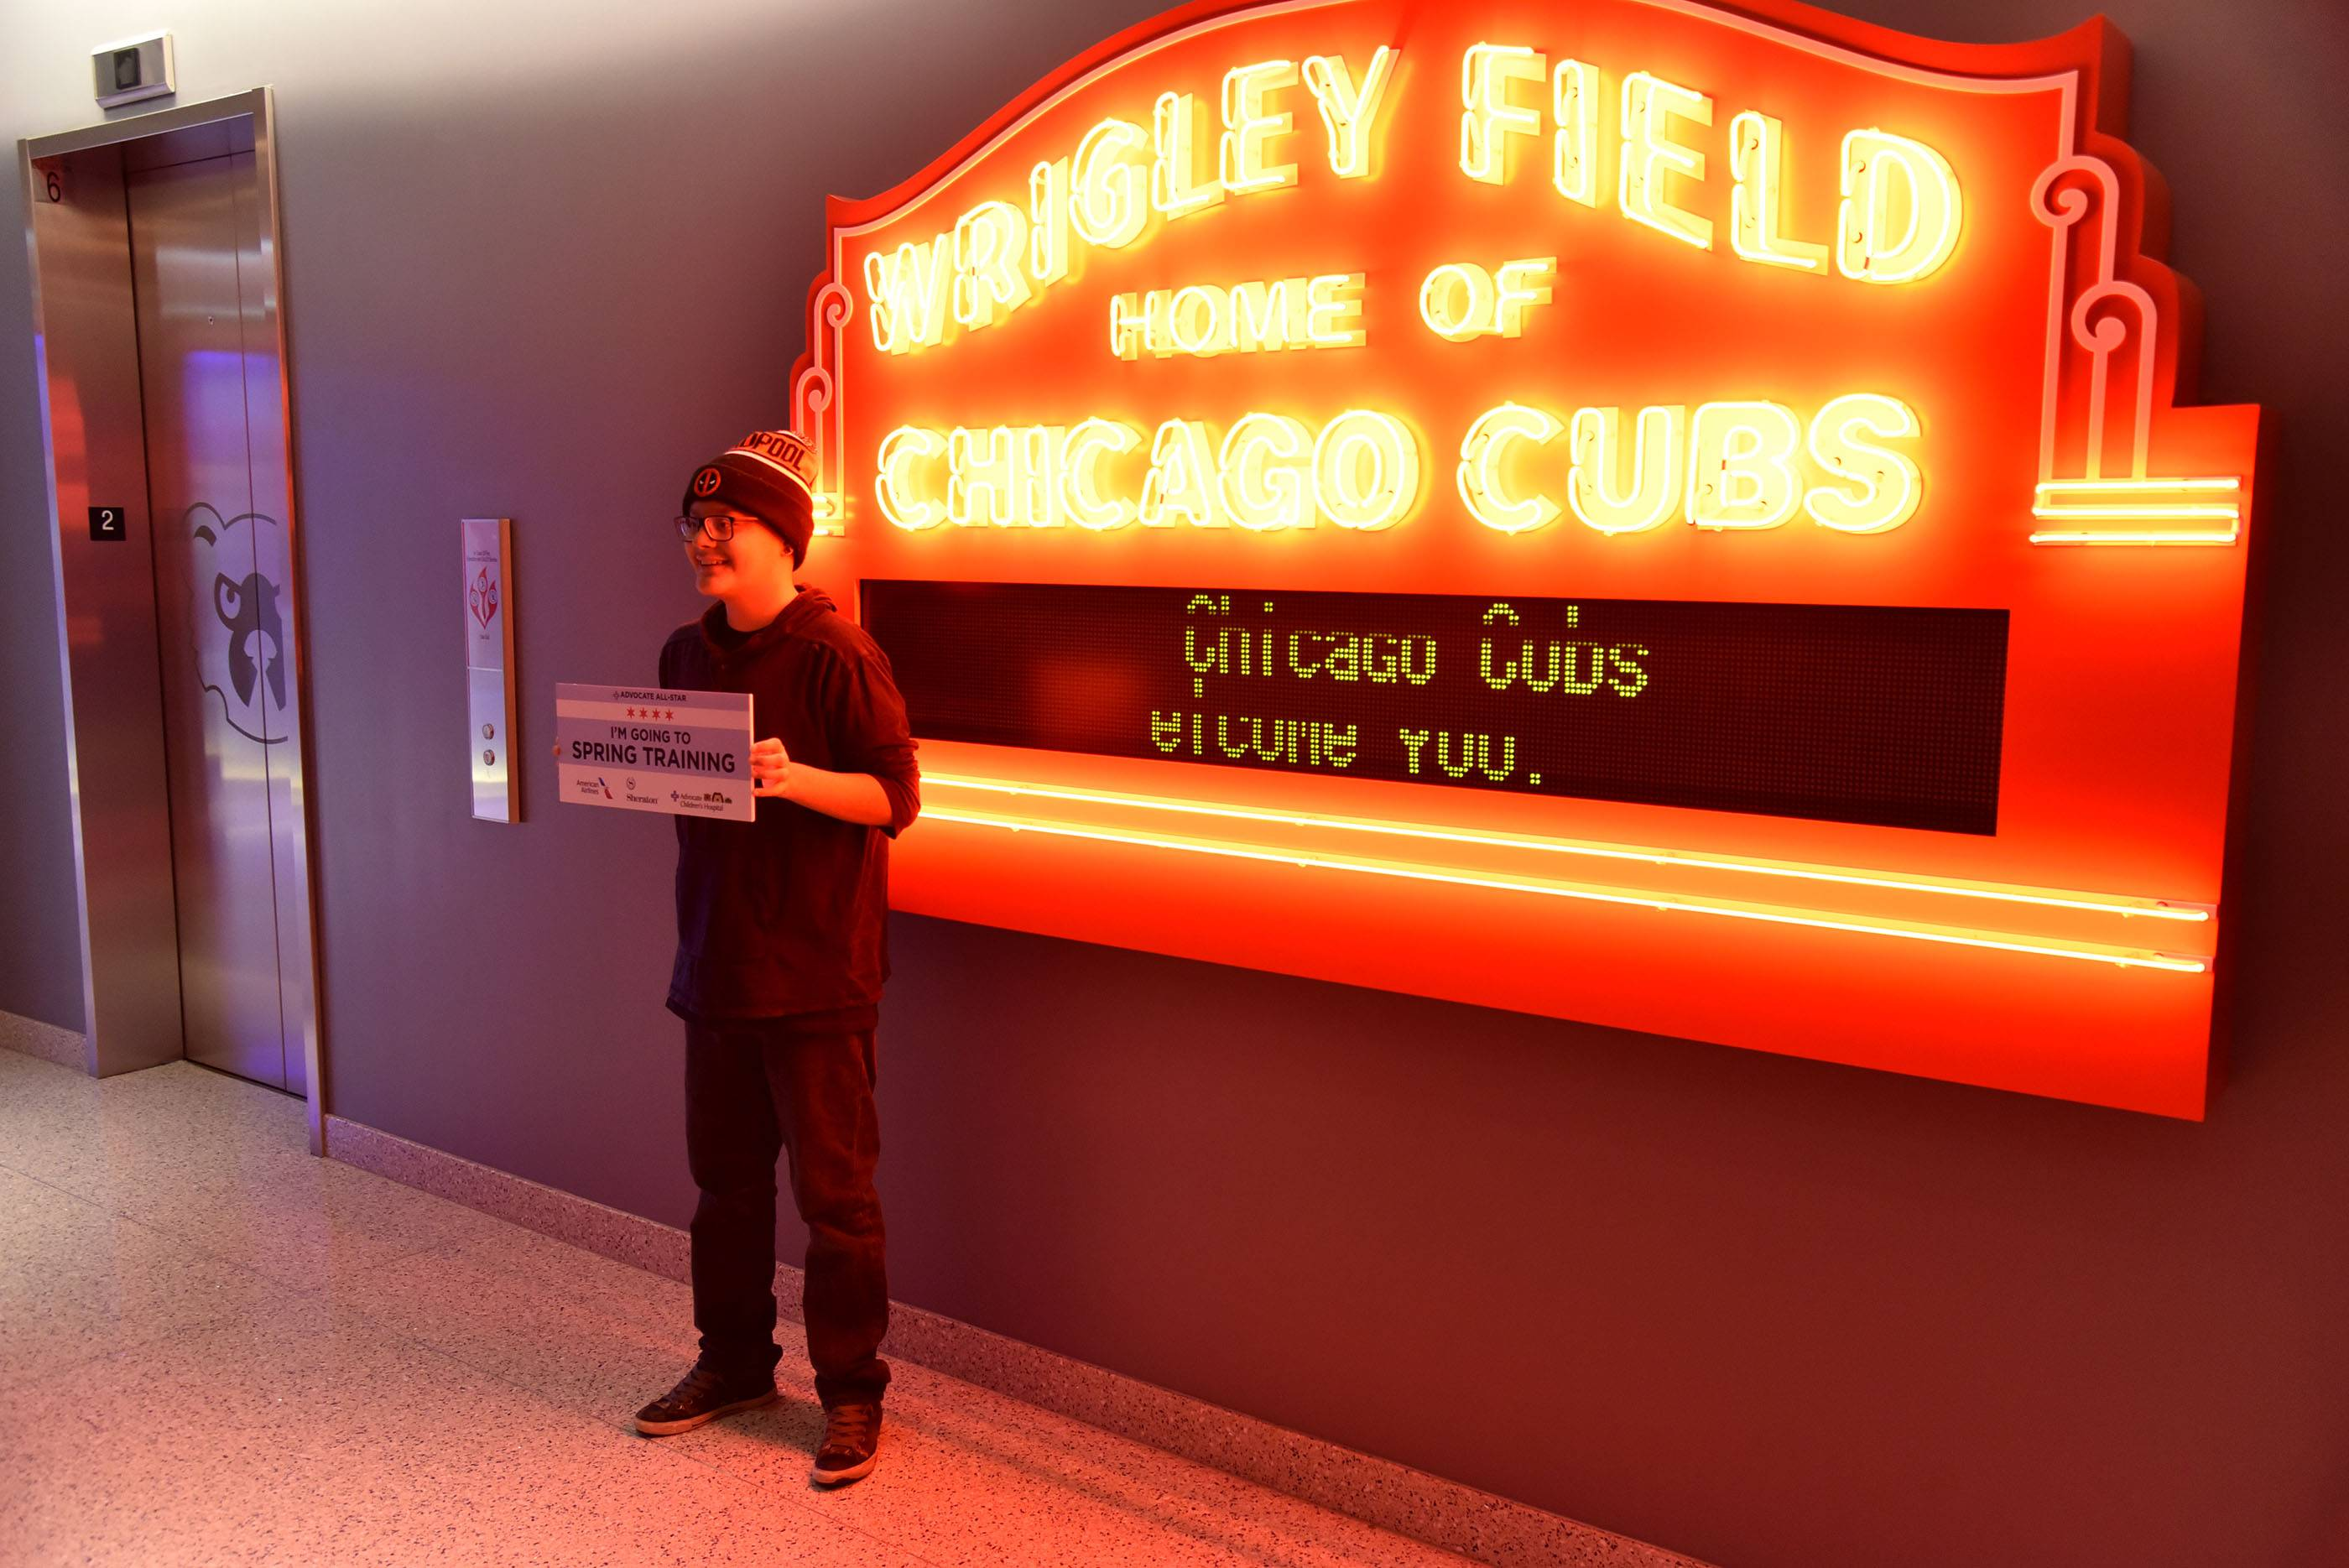 Jonathan Olmos, 16, of Des Plaines poses for a photo Wednesday at Wrigley Field where he learned he was among four patients at Advocate Children's Hospital in Park Ridge who received a free trip to see the Chicago Cubs in spring training in Arizona.